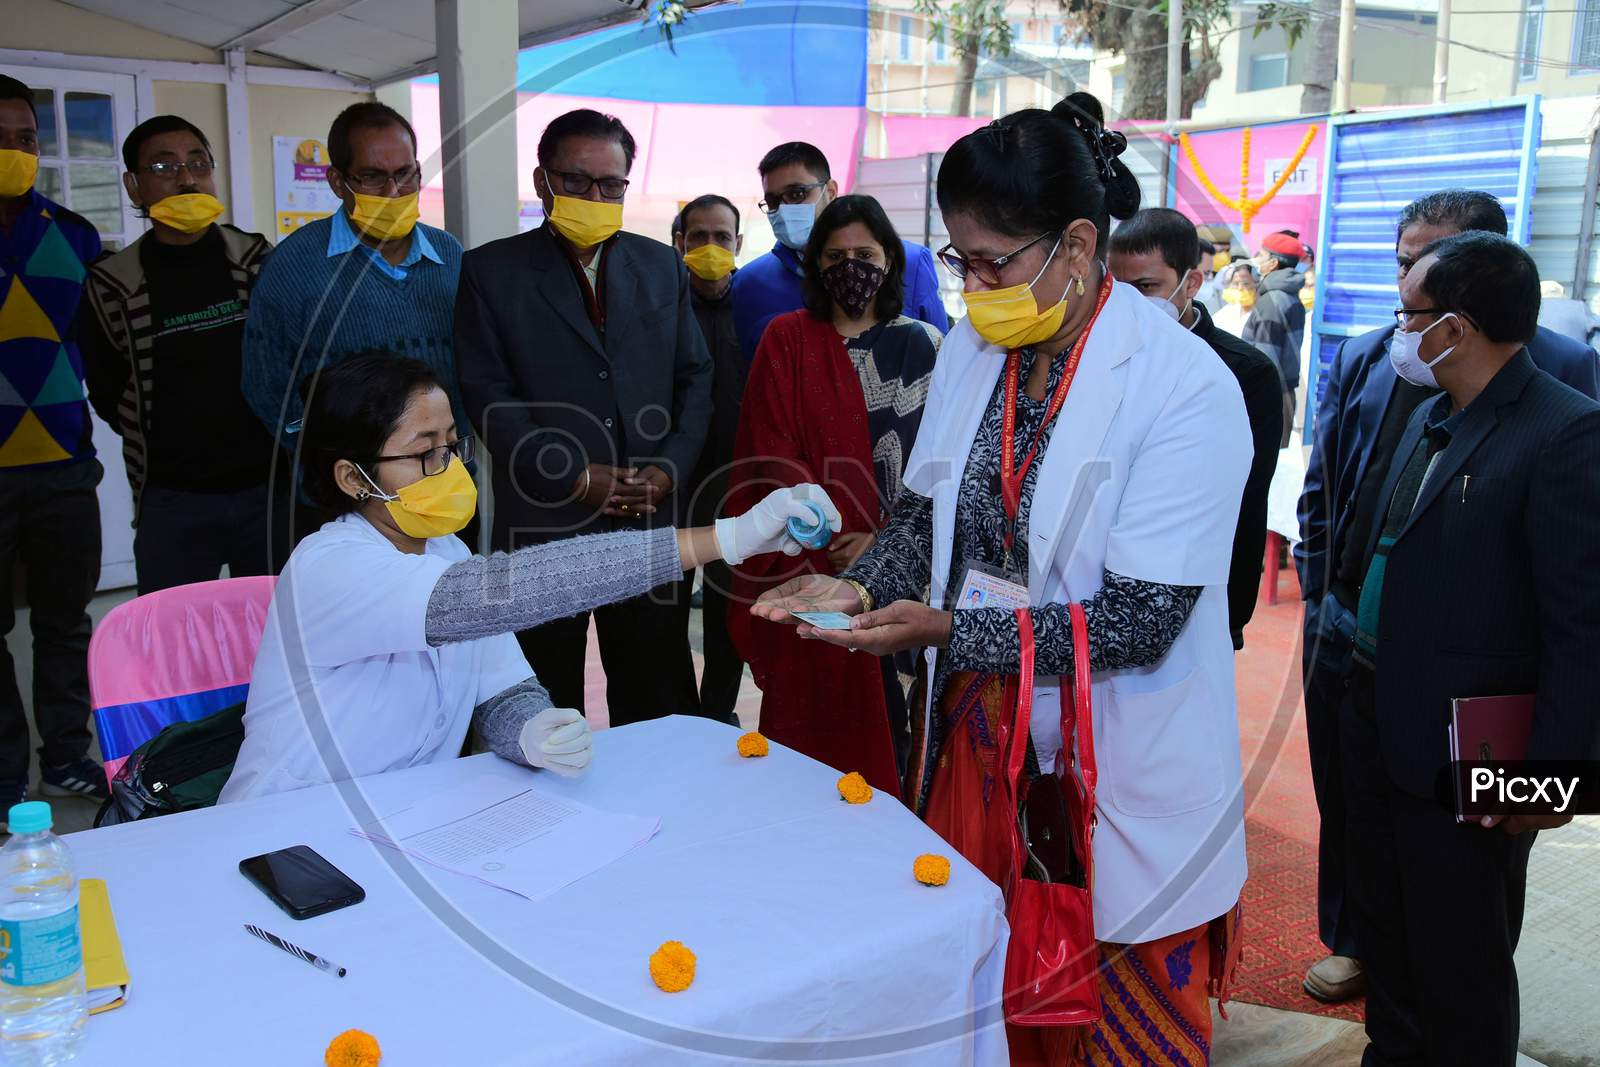 Nagaon : Health Workers  Sanitize Her Hand  Beforeb  Get Covid-19 Vaccination, After The Virtual Launch Of The Vaccine Drive By Prime Minister Narendra Modi, In At B.P Civil Hospital In Nagaon District Of Assam On Jan 16,2021.